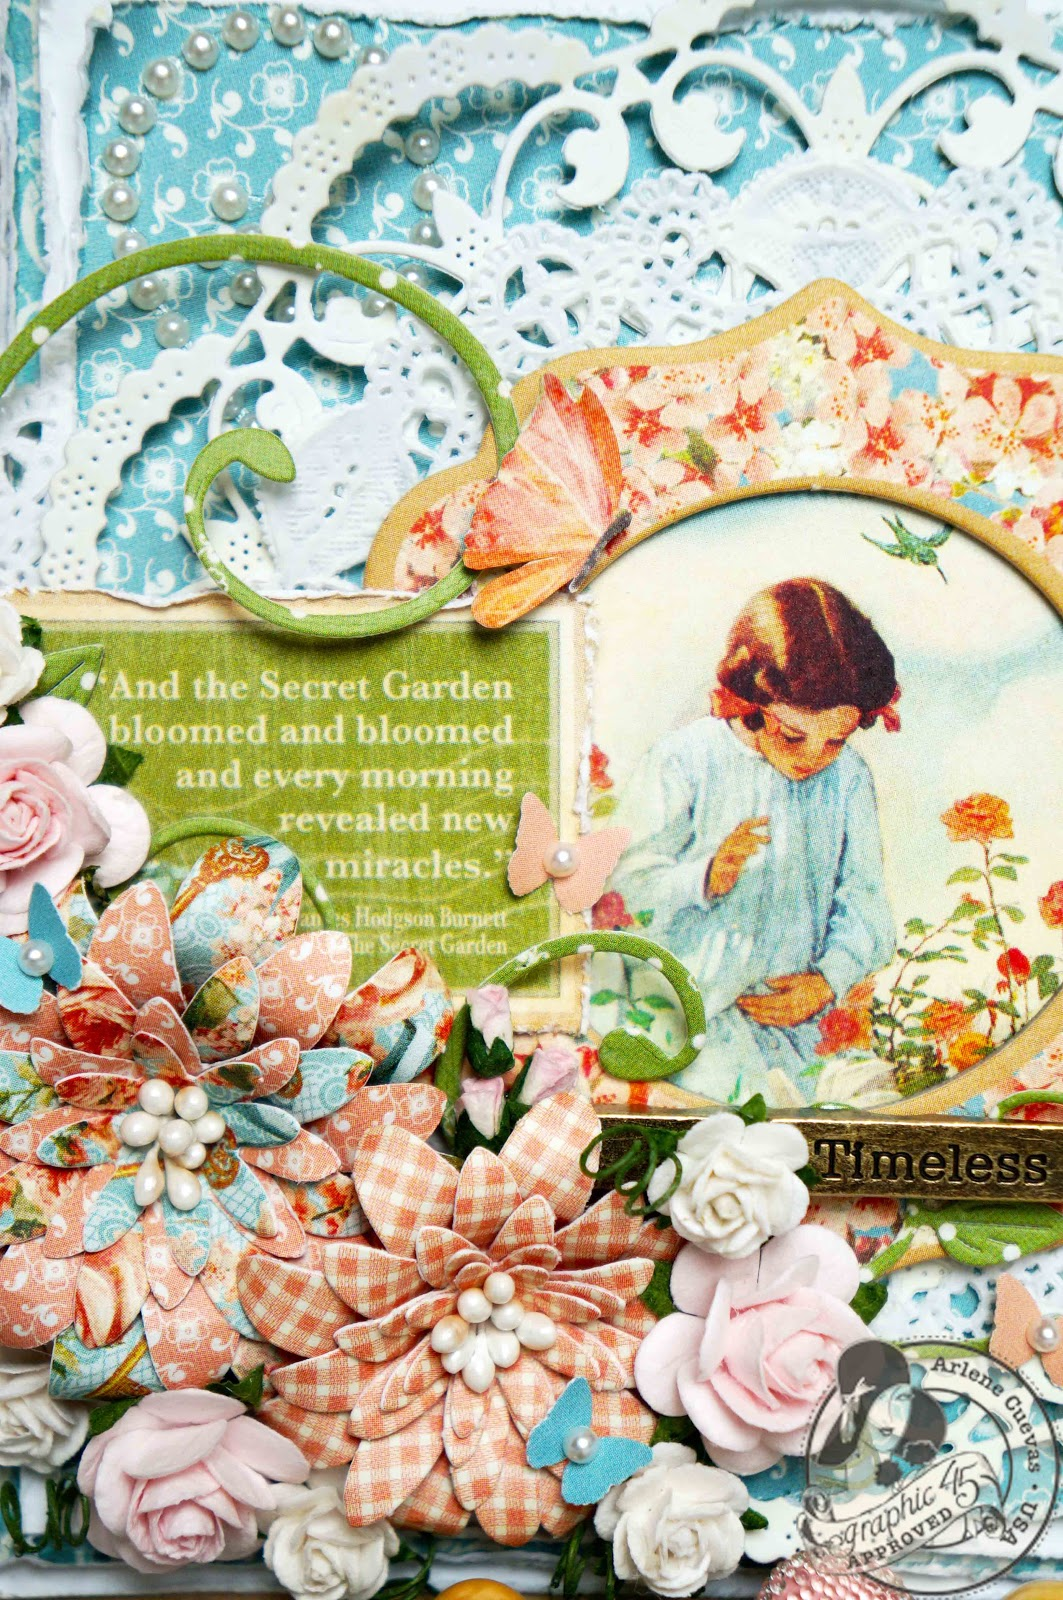 essay on the secret garden The secret garden, written by frances hodgson burnett, is a charming book   full books or essays about frances hodgson burnett written by other authors.